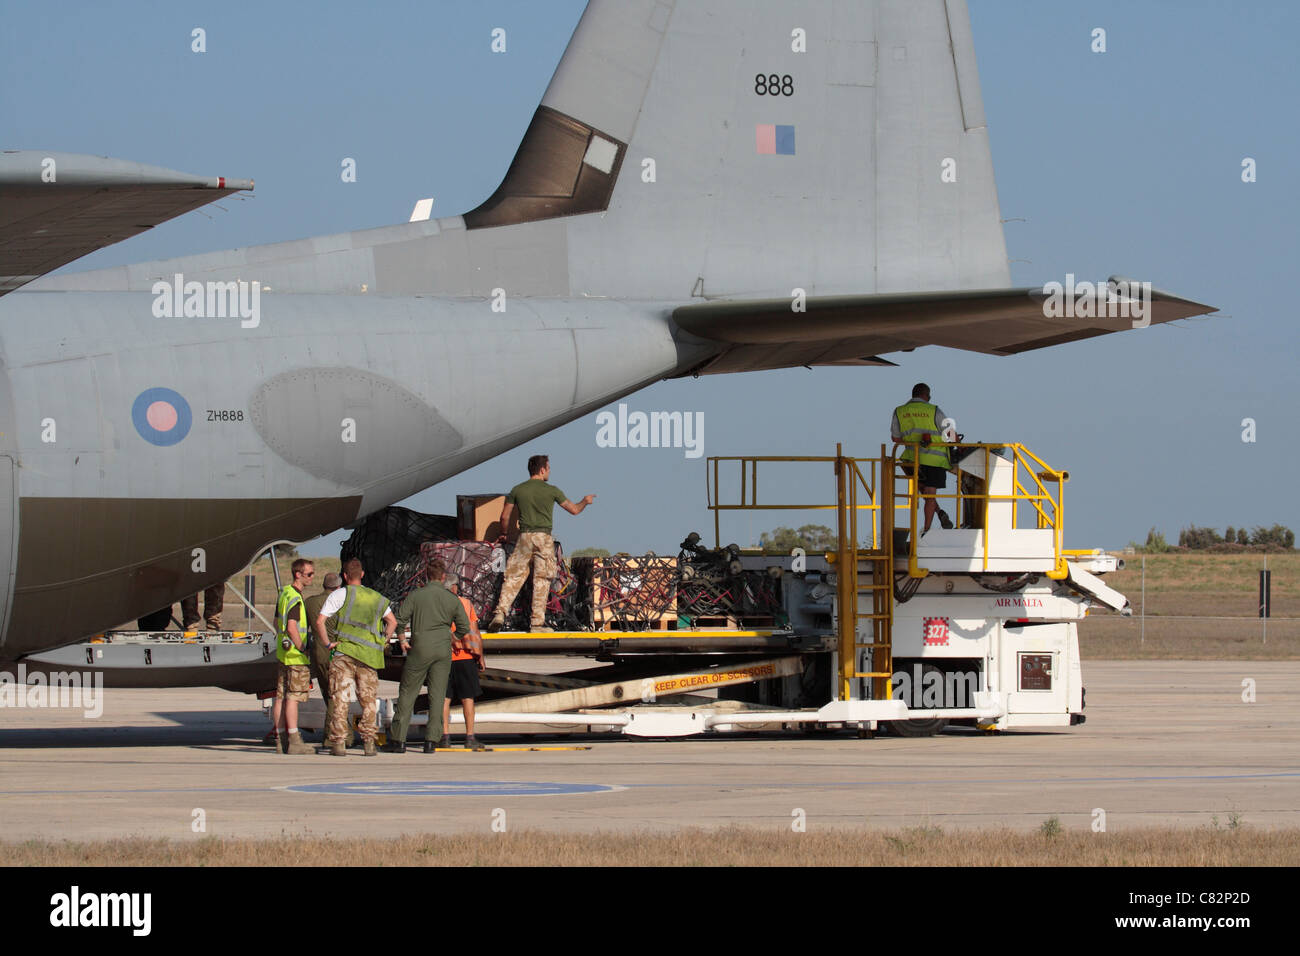 Logistica militare. Lo scarico di forniture da un Royal Air Force Hercules C5 piano di trasporto Immagini Stock